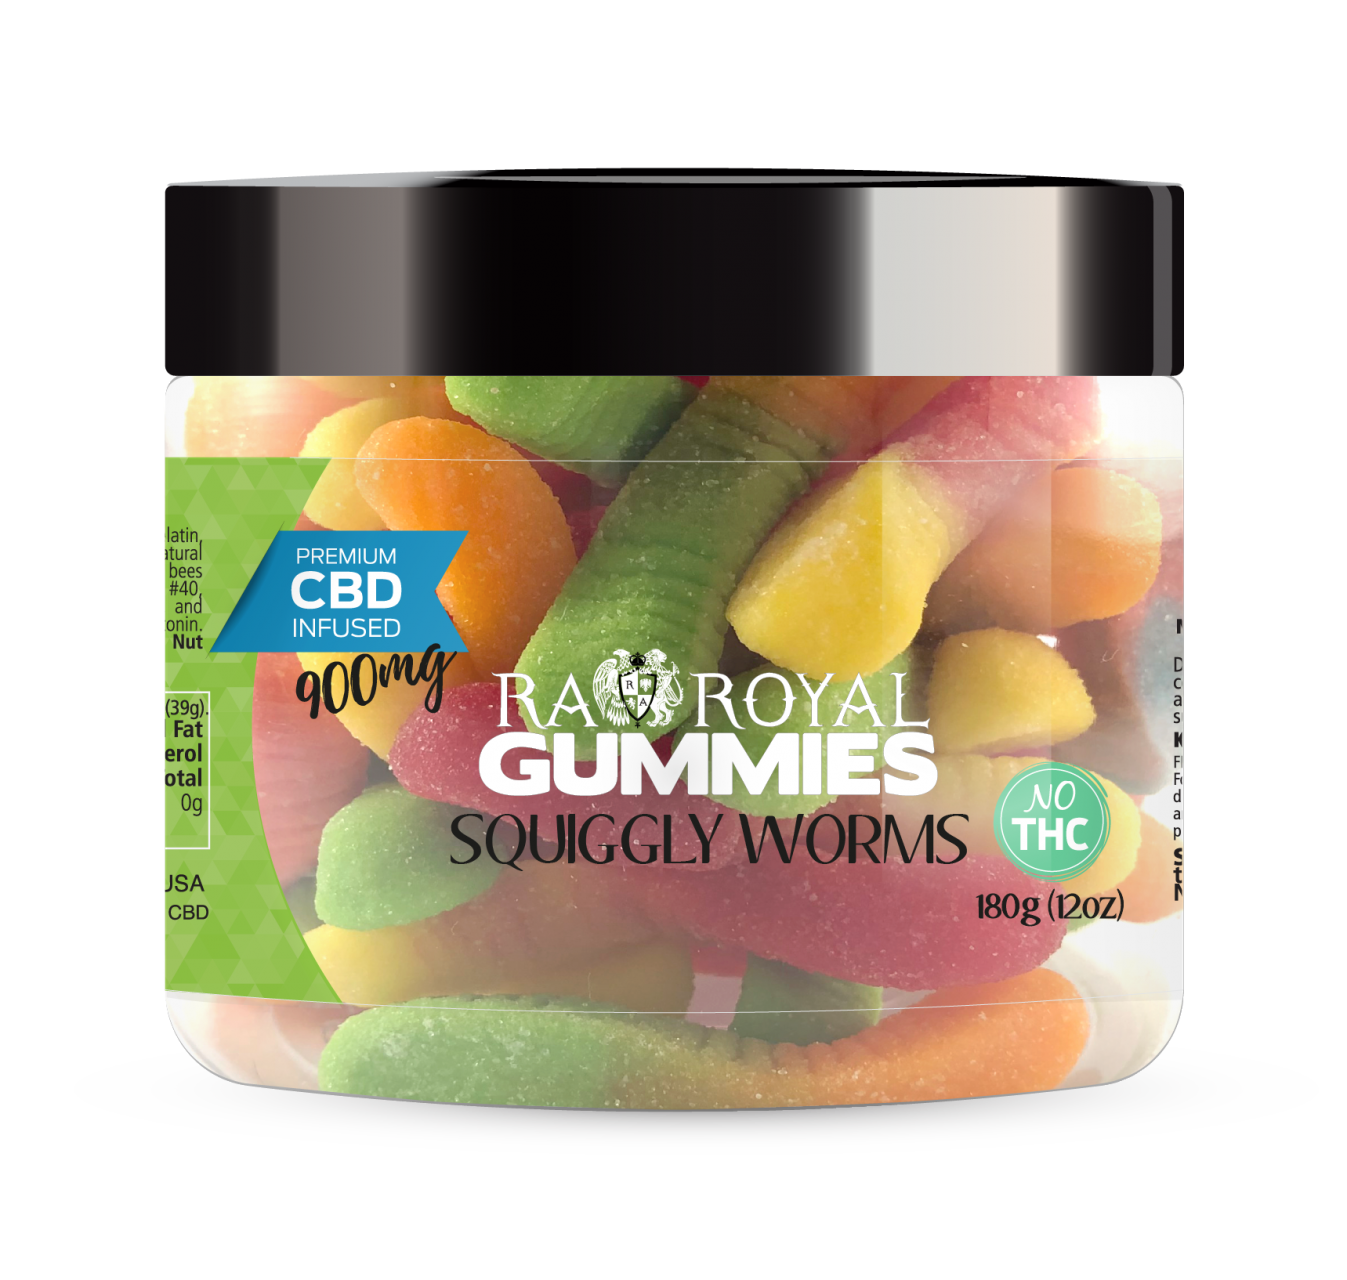 R.A. Royal Gummies – 900MG CBD Infused Squiggly Worms